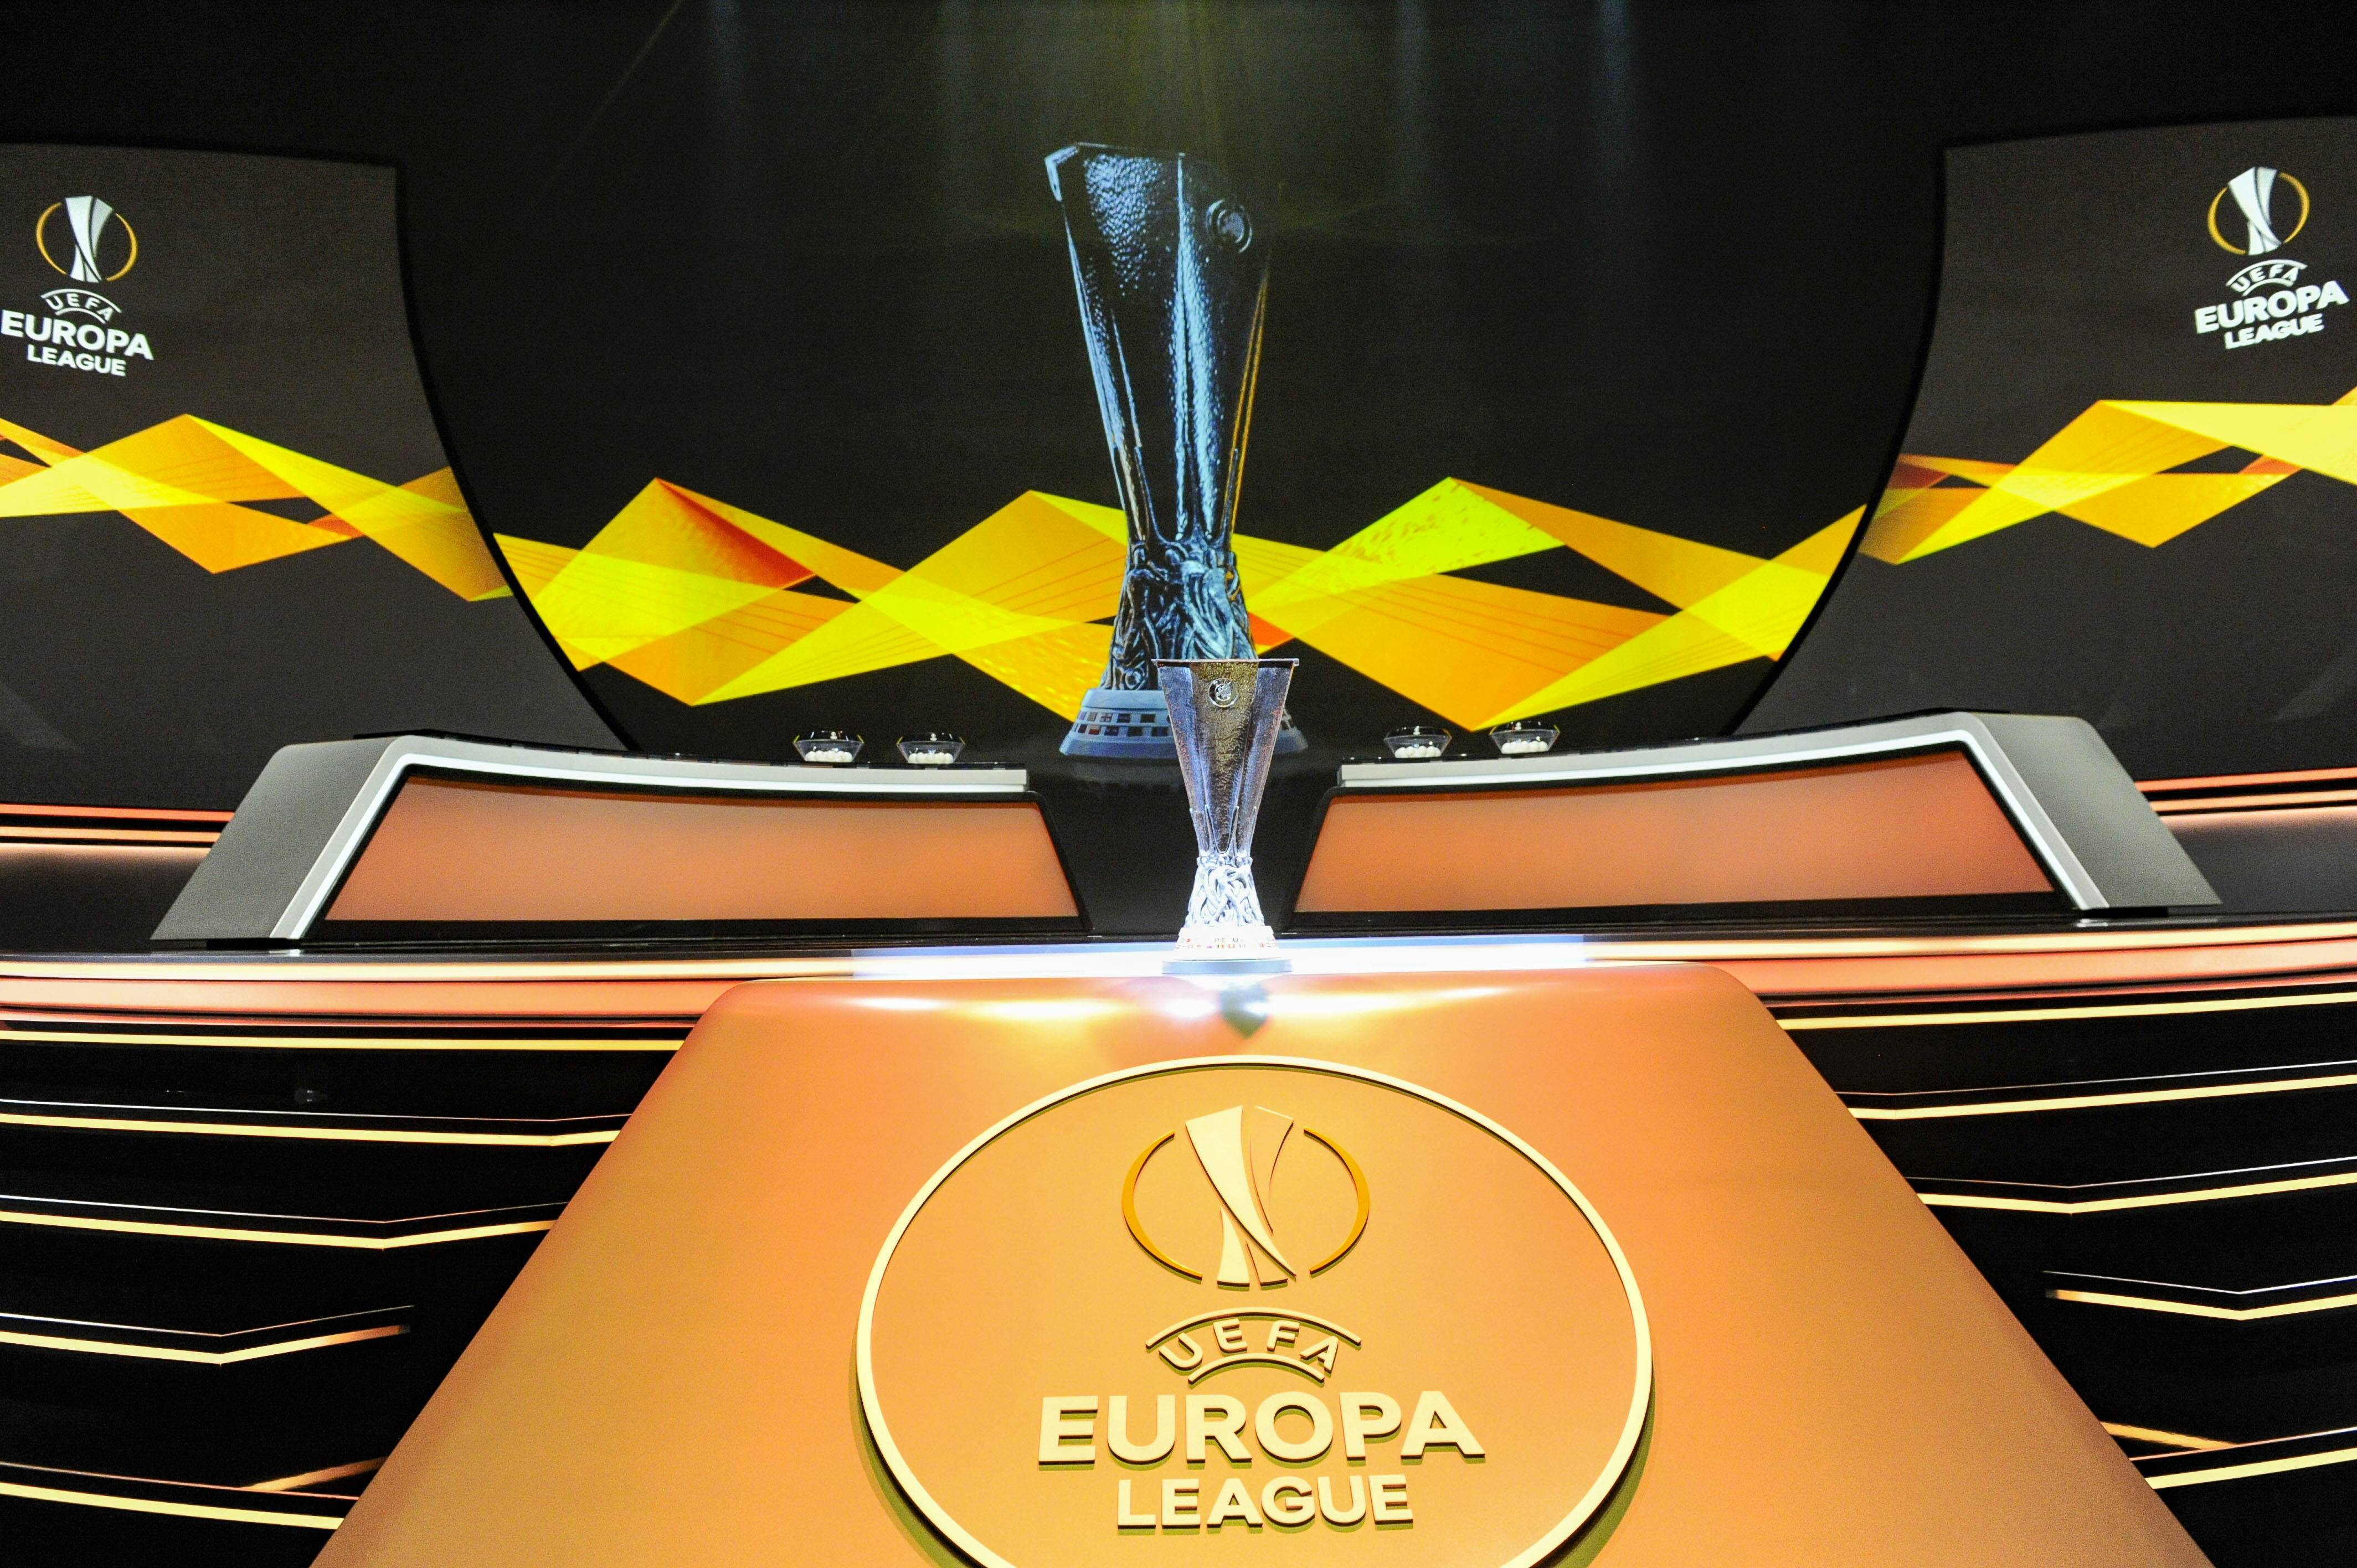 UEFA Europa League Draw: All The Details